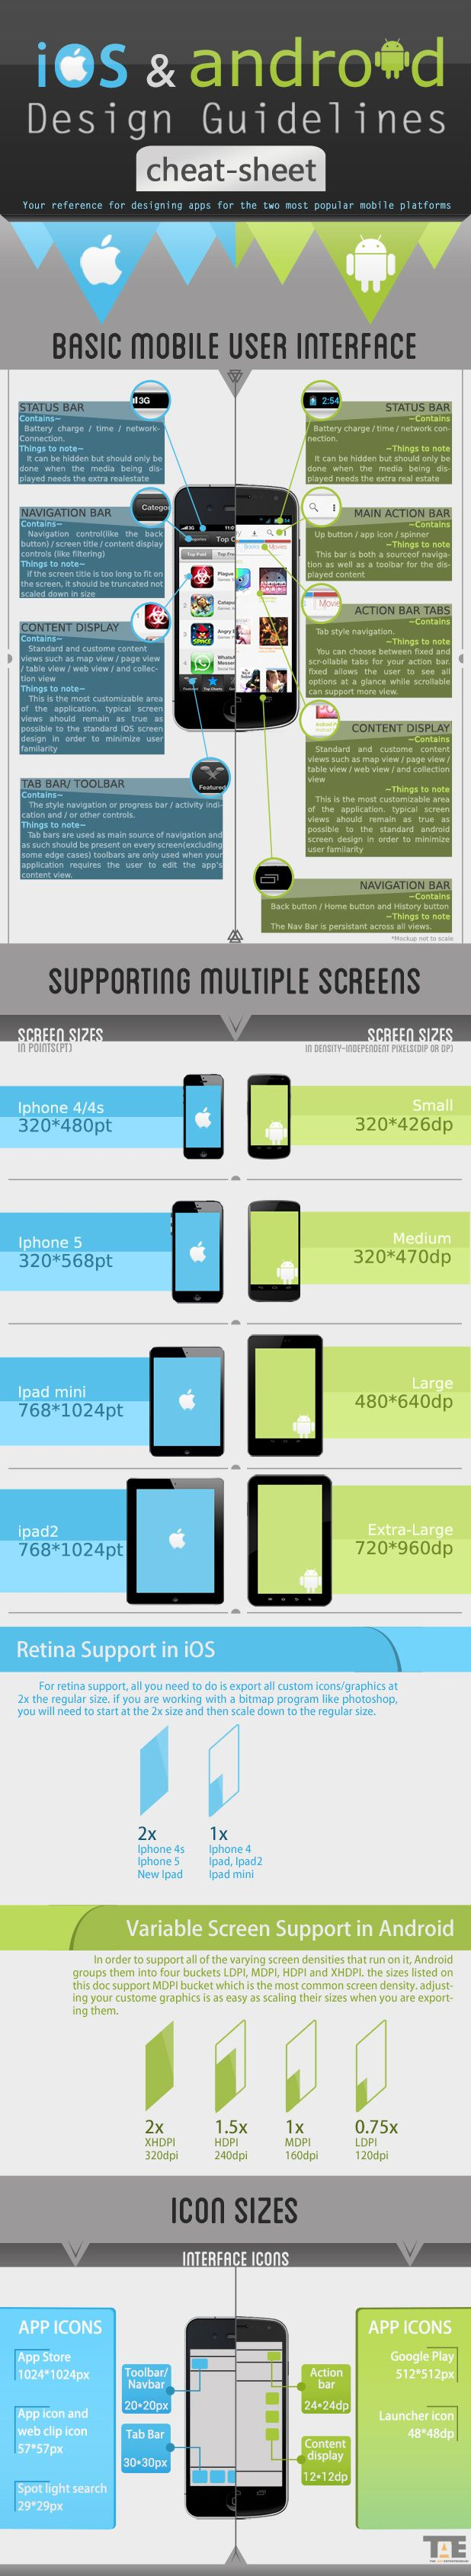 Ios Android Design Guidelines Cheat Sheet Infographic Android Design Android Design Guidelines Design Guidelines